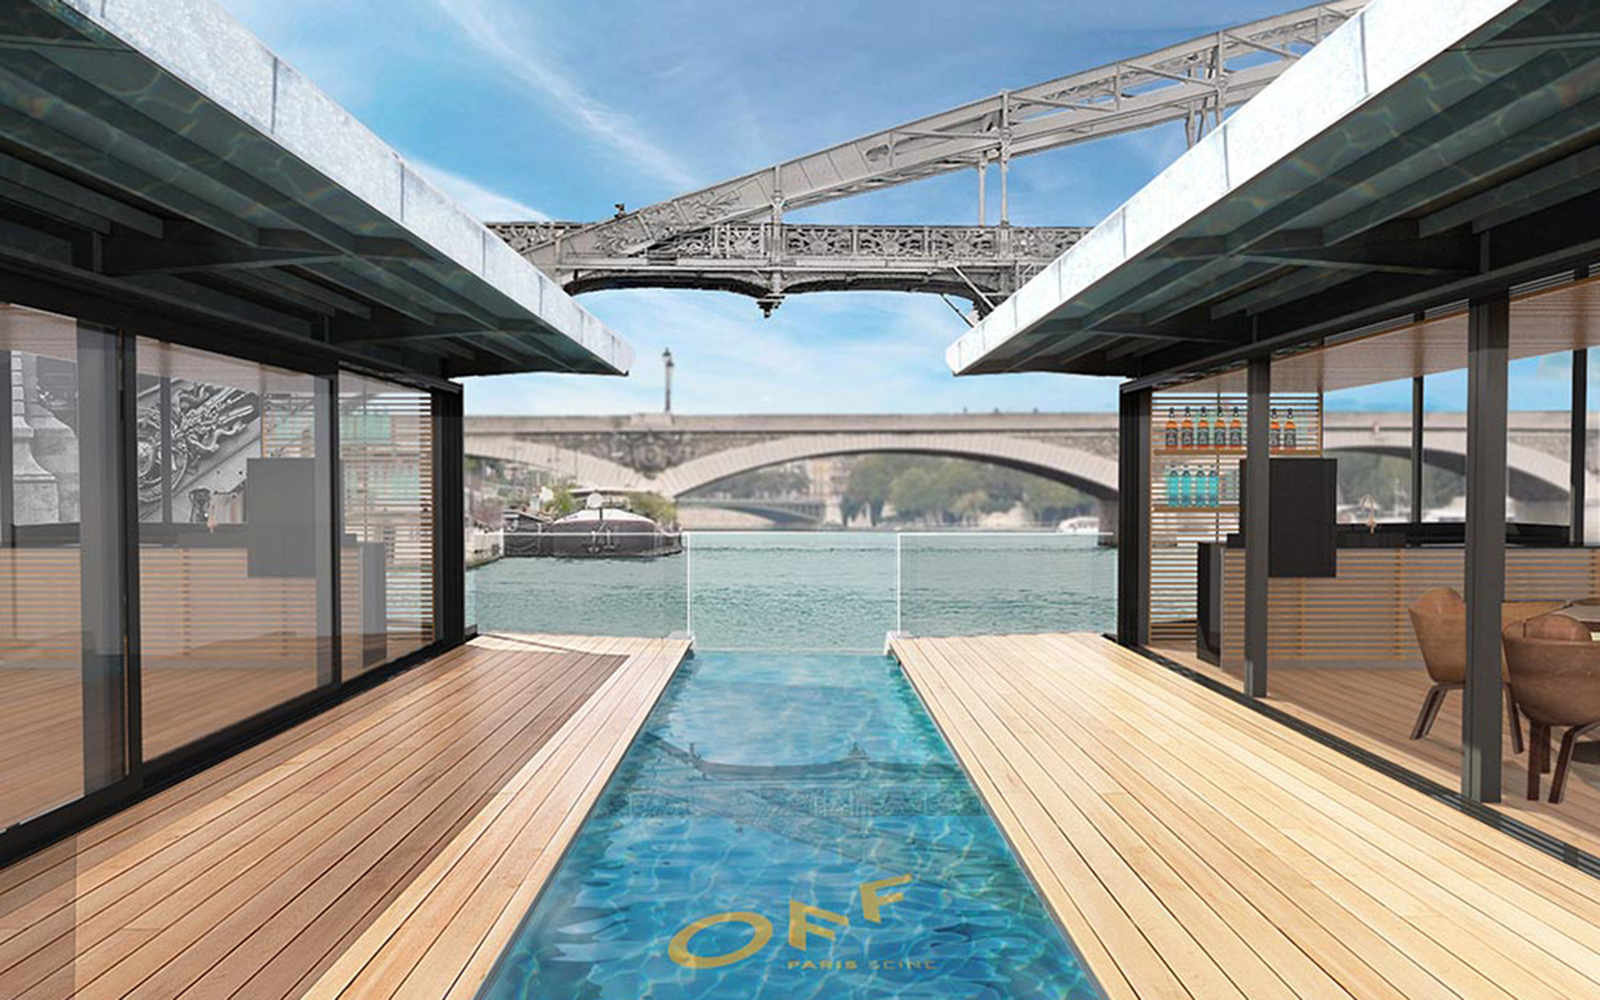 Paris to welcome a floating hotel on the seine travel for Floating swimming pool paris